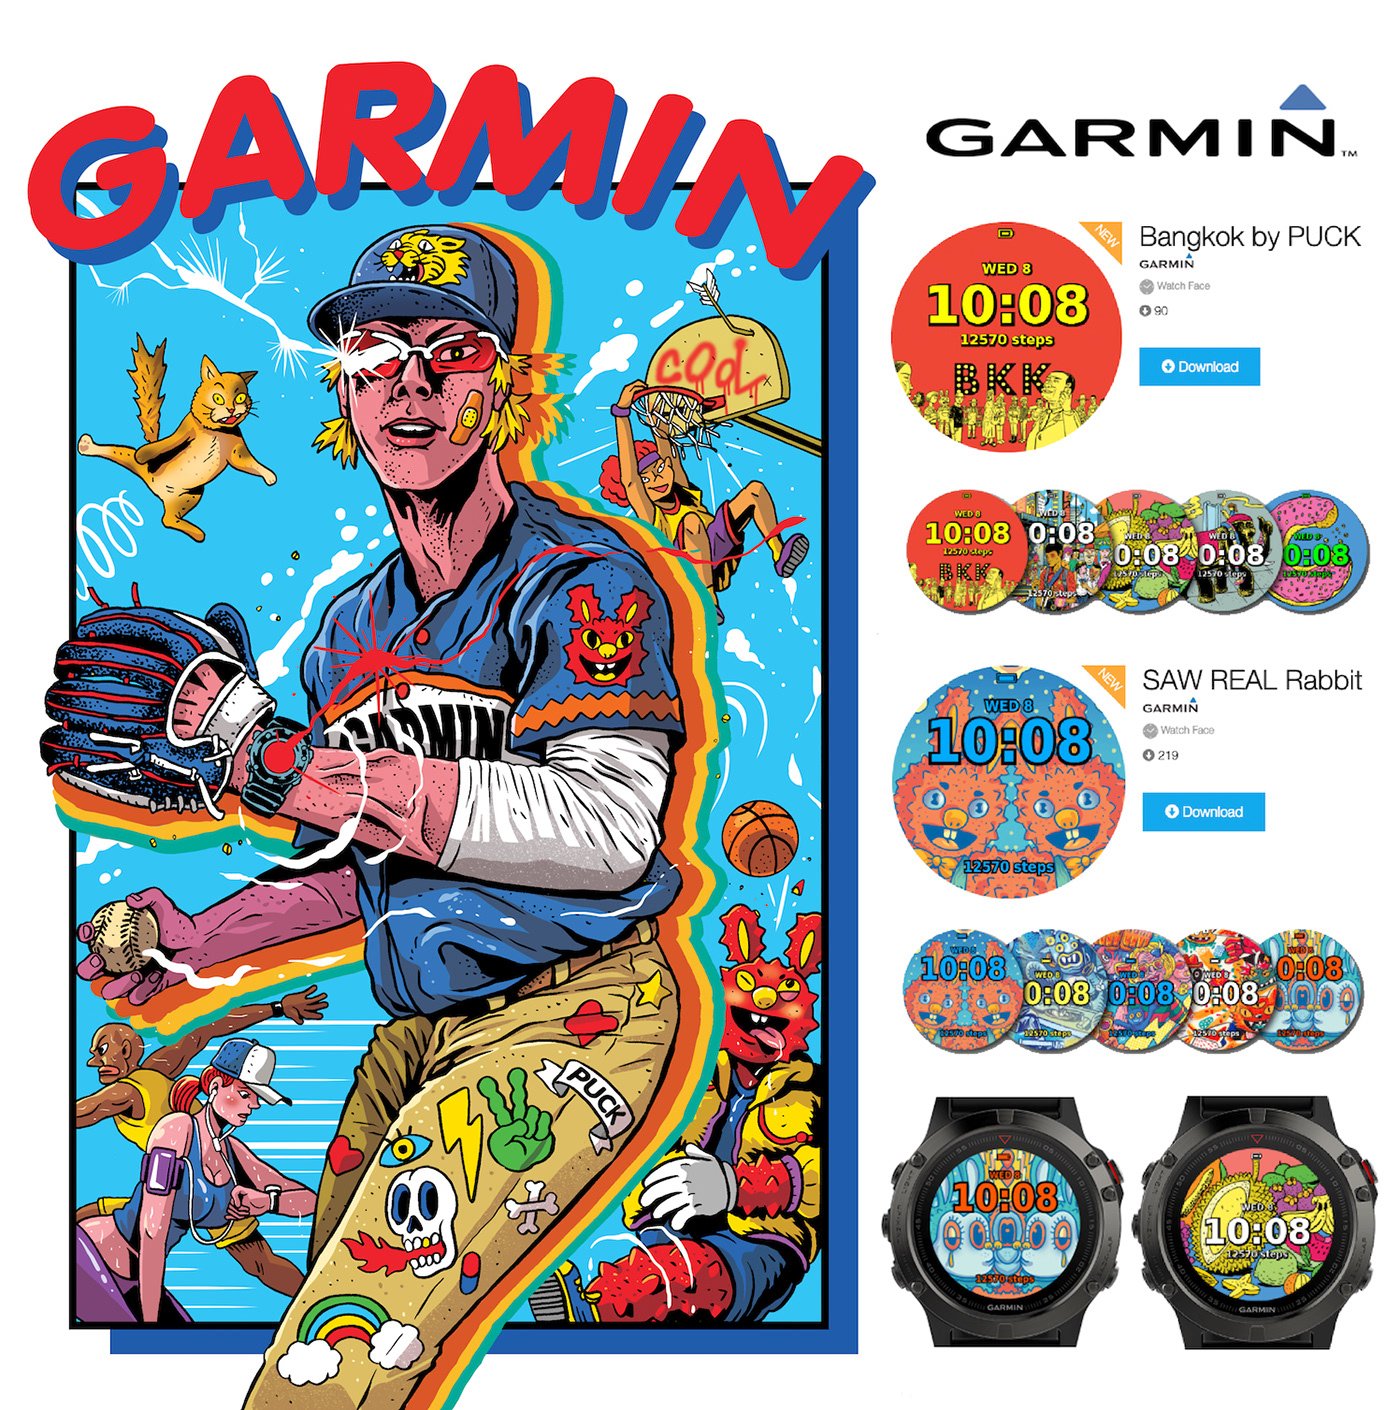 GARMIN (puck) on Behance